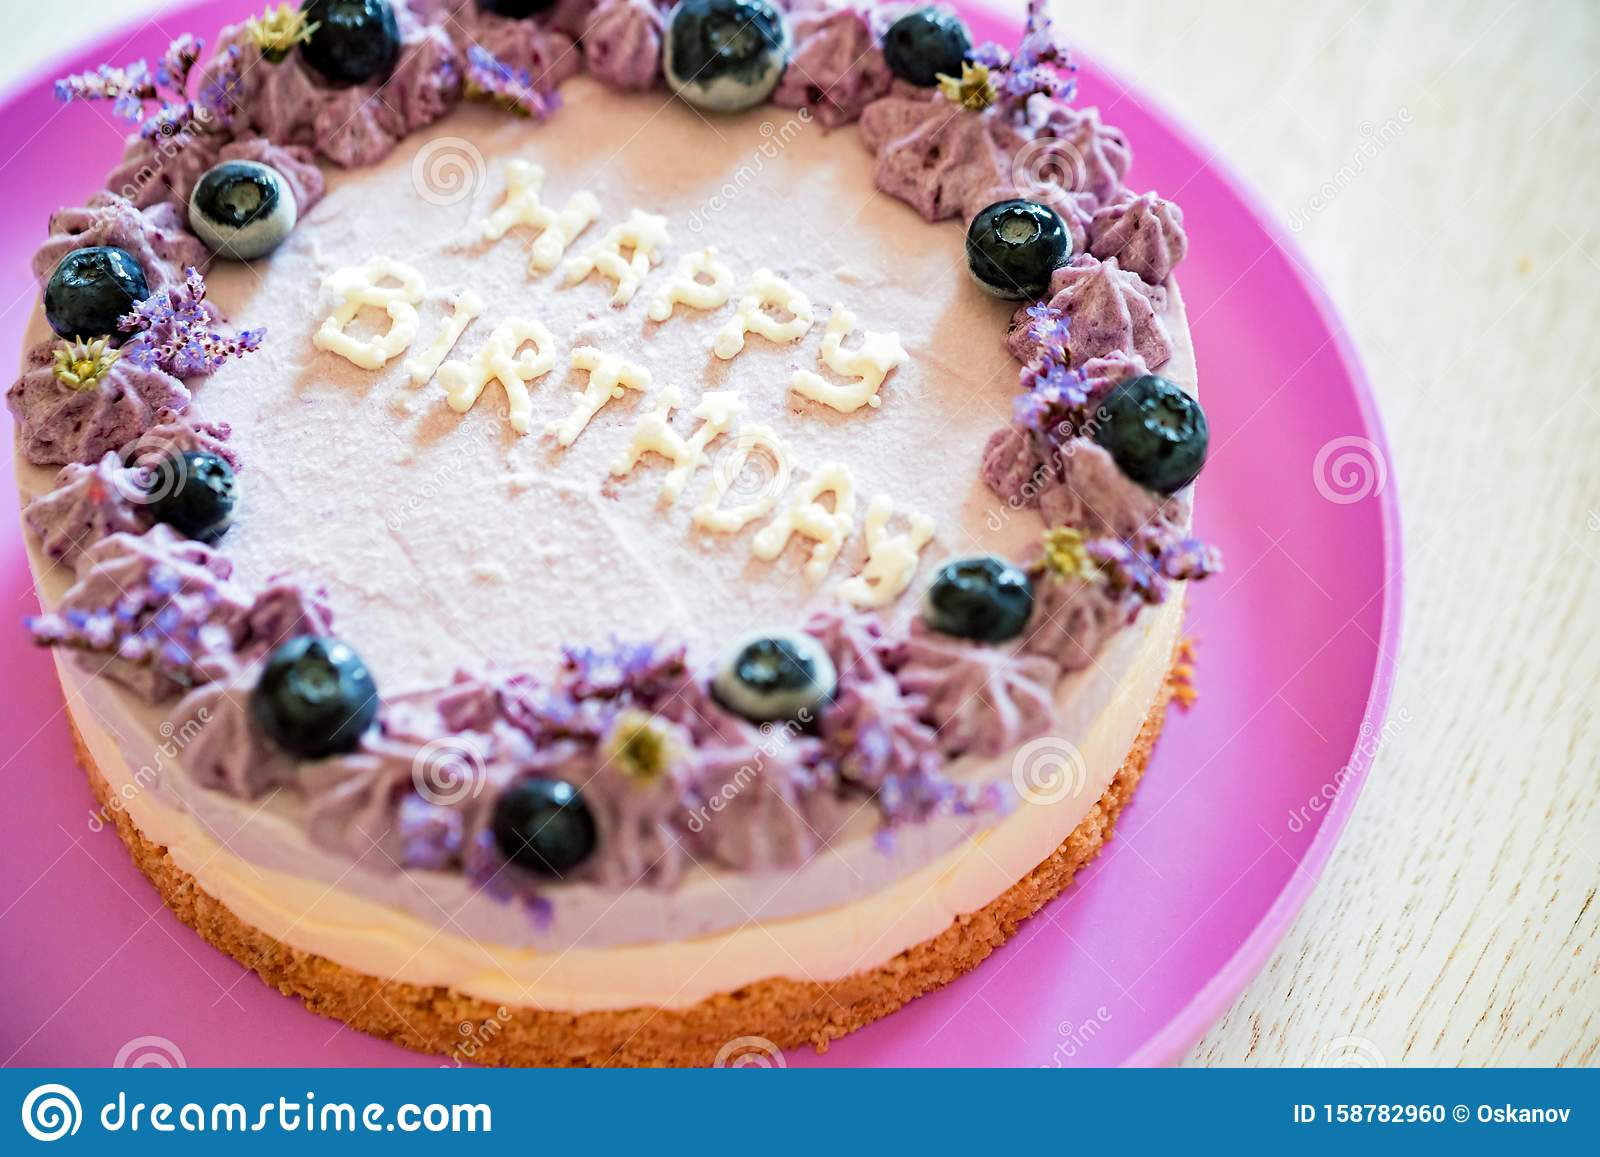 Sensational Close Up Birthday Cake With Cream And Blueberries Stock Photo Birthday Cards Printable Benkemecafe Filternl